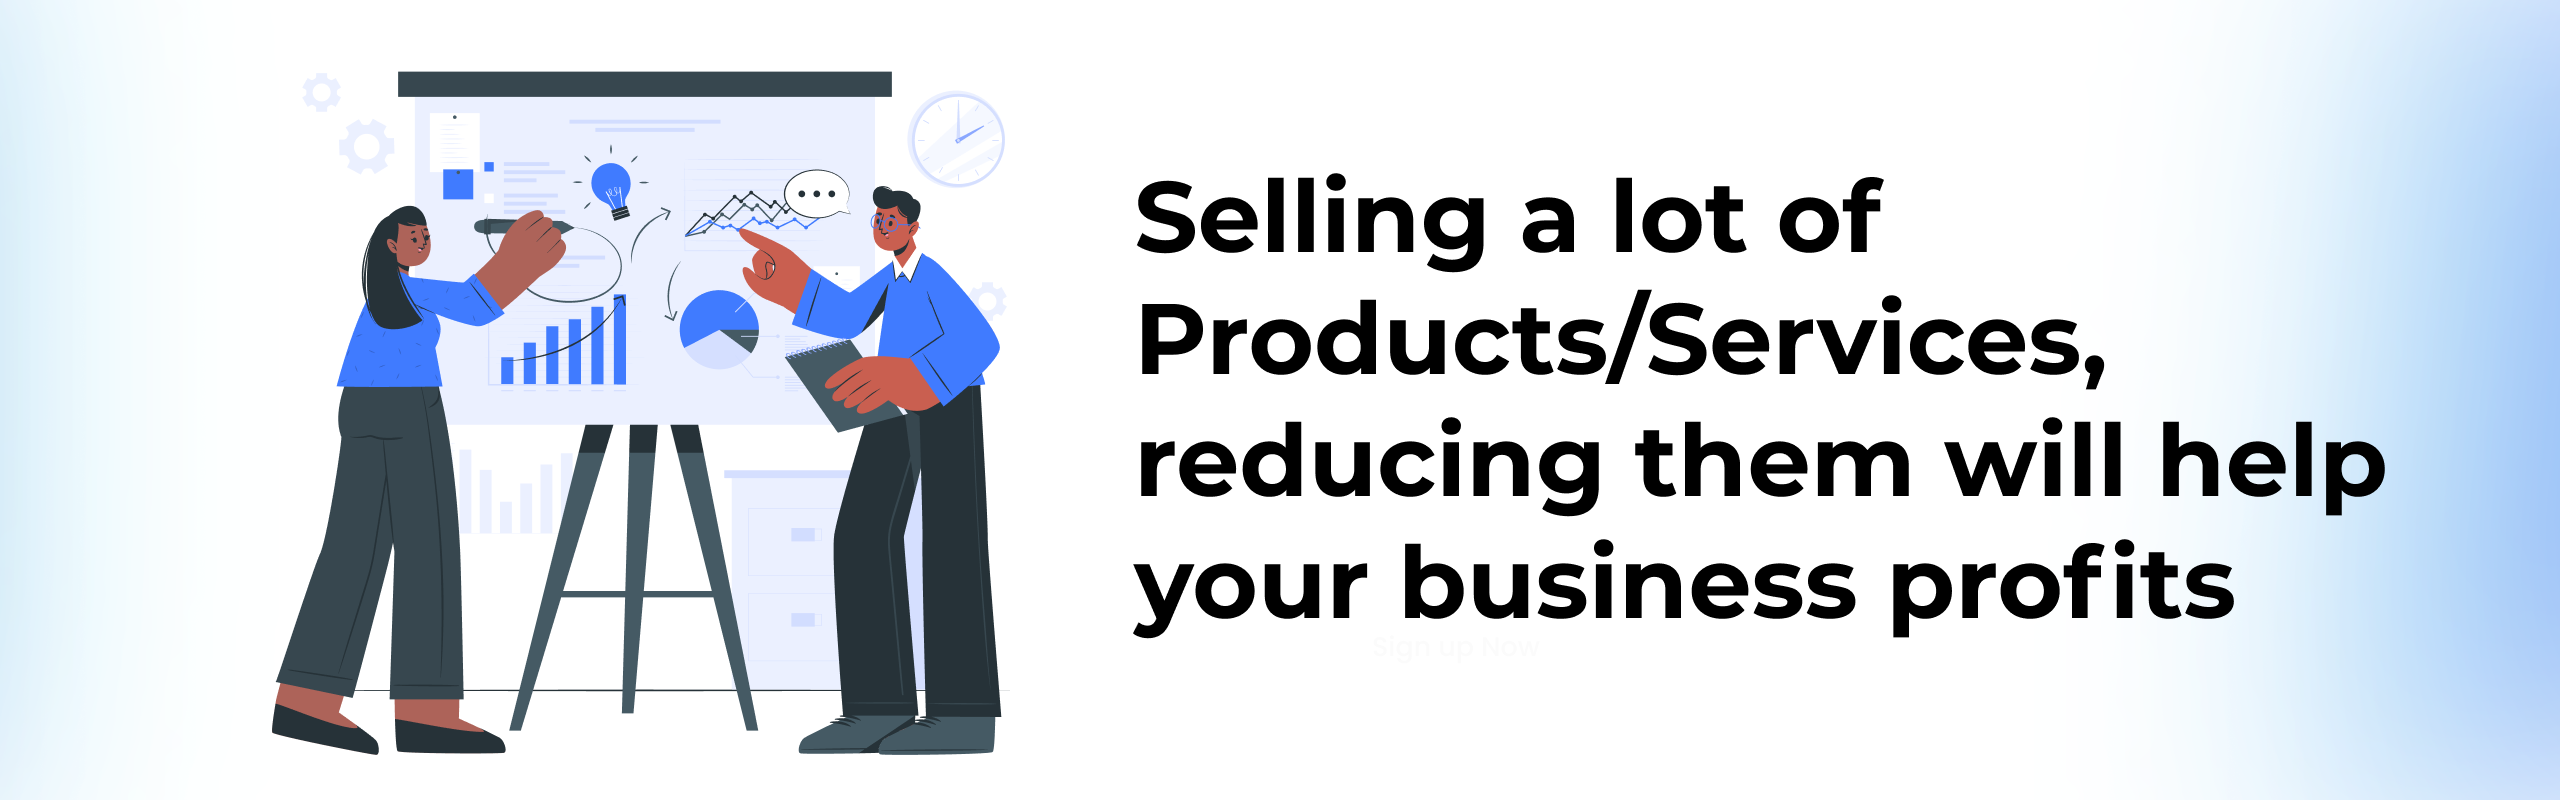 Selling a lot of Products/Services, reducing them will help your business profits